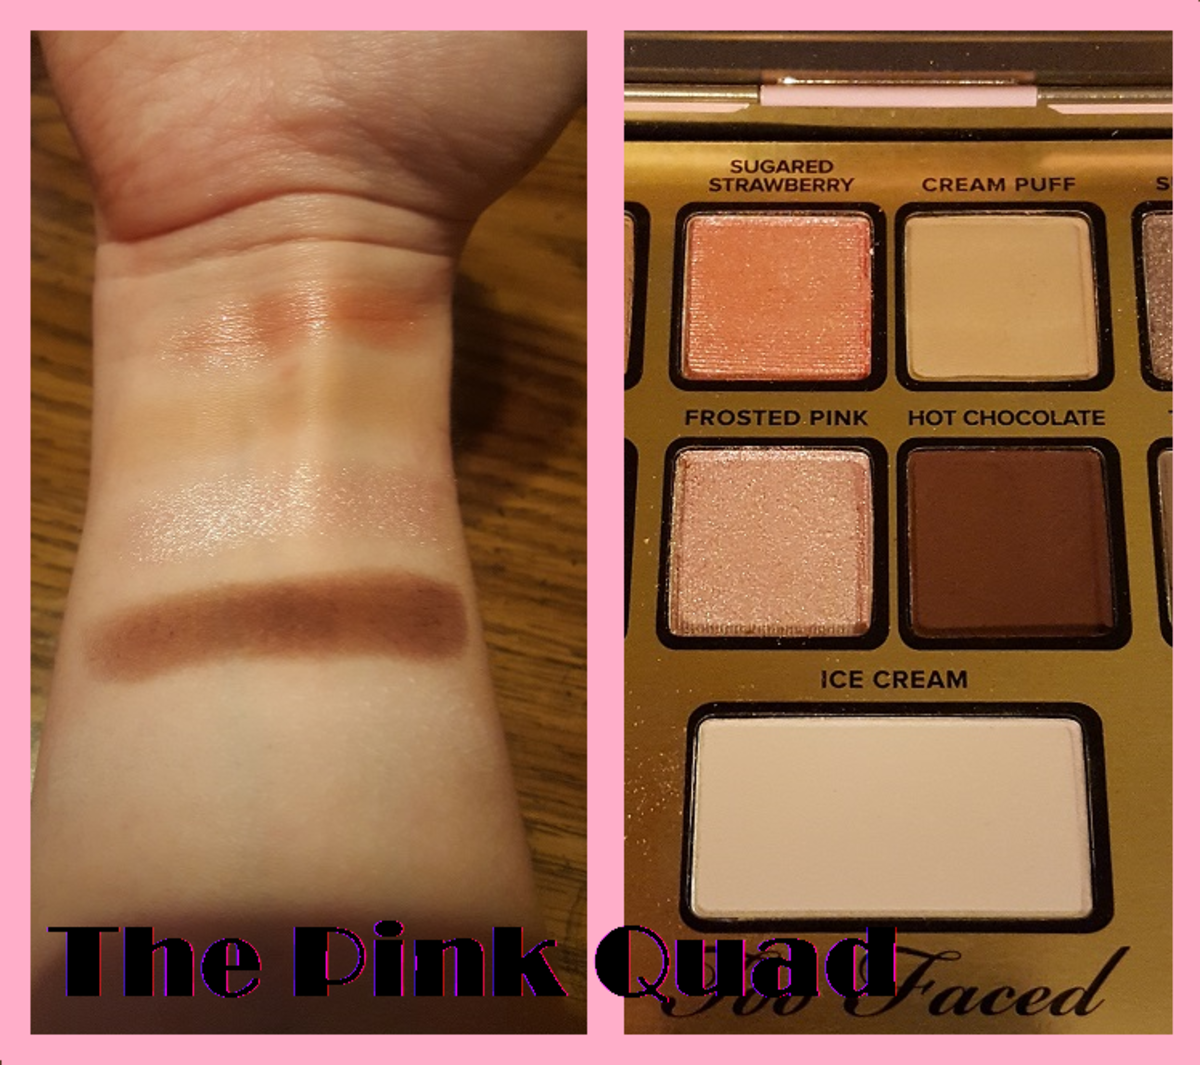 Finger swatches for the pink quad and the highlight below it. From top to bottom: Sugared Strawberry, Cream Puff, Frosted Pink, Hot Chocolate, and Ice Cream (which is hard to see on my skin tone).